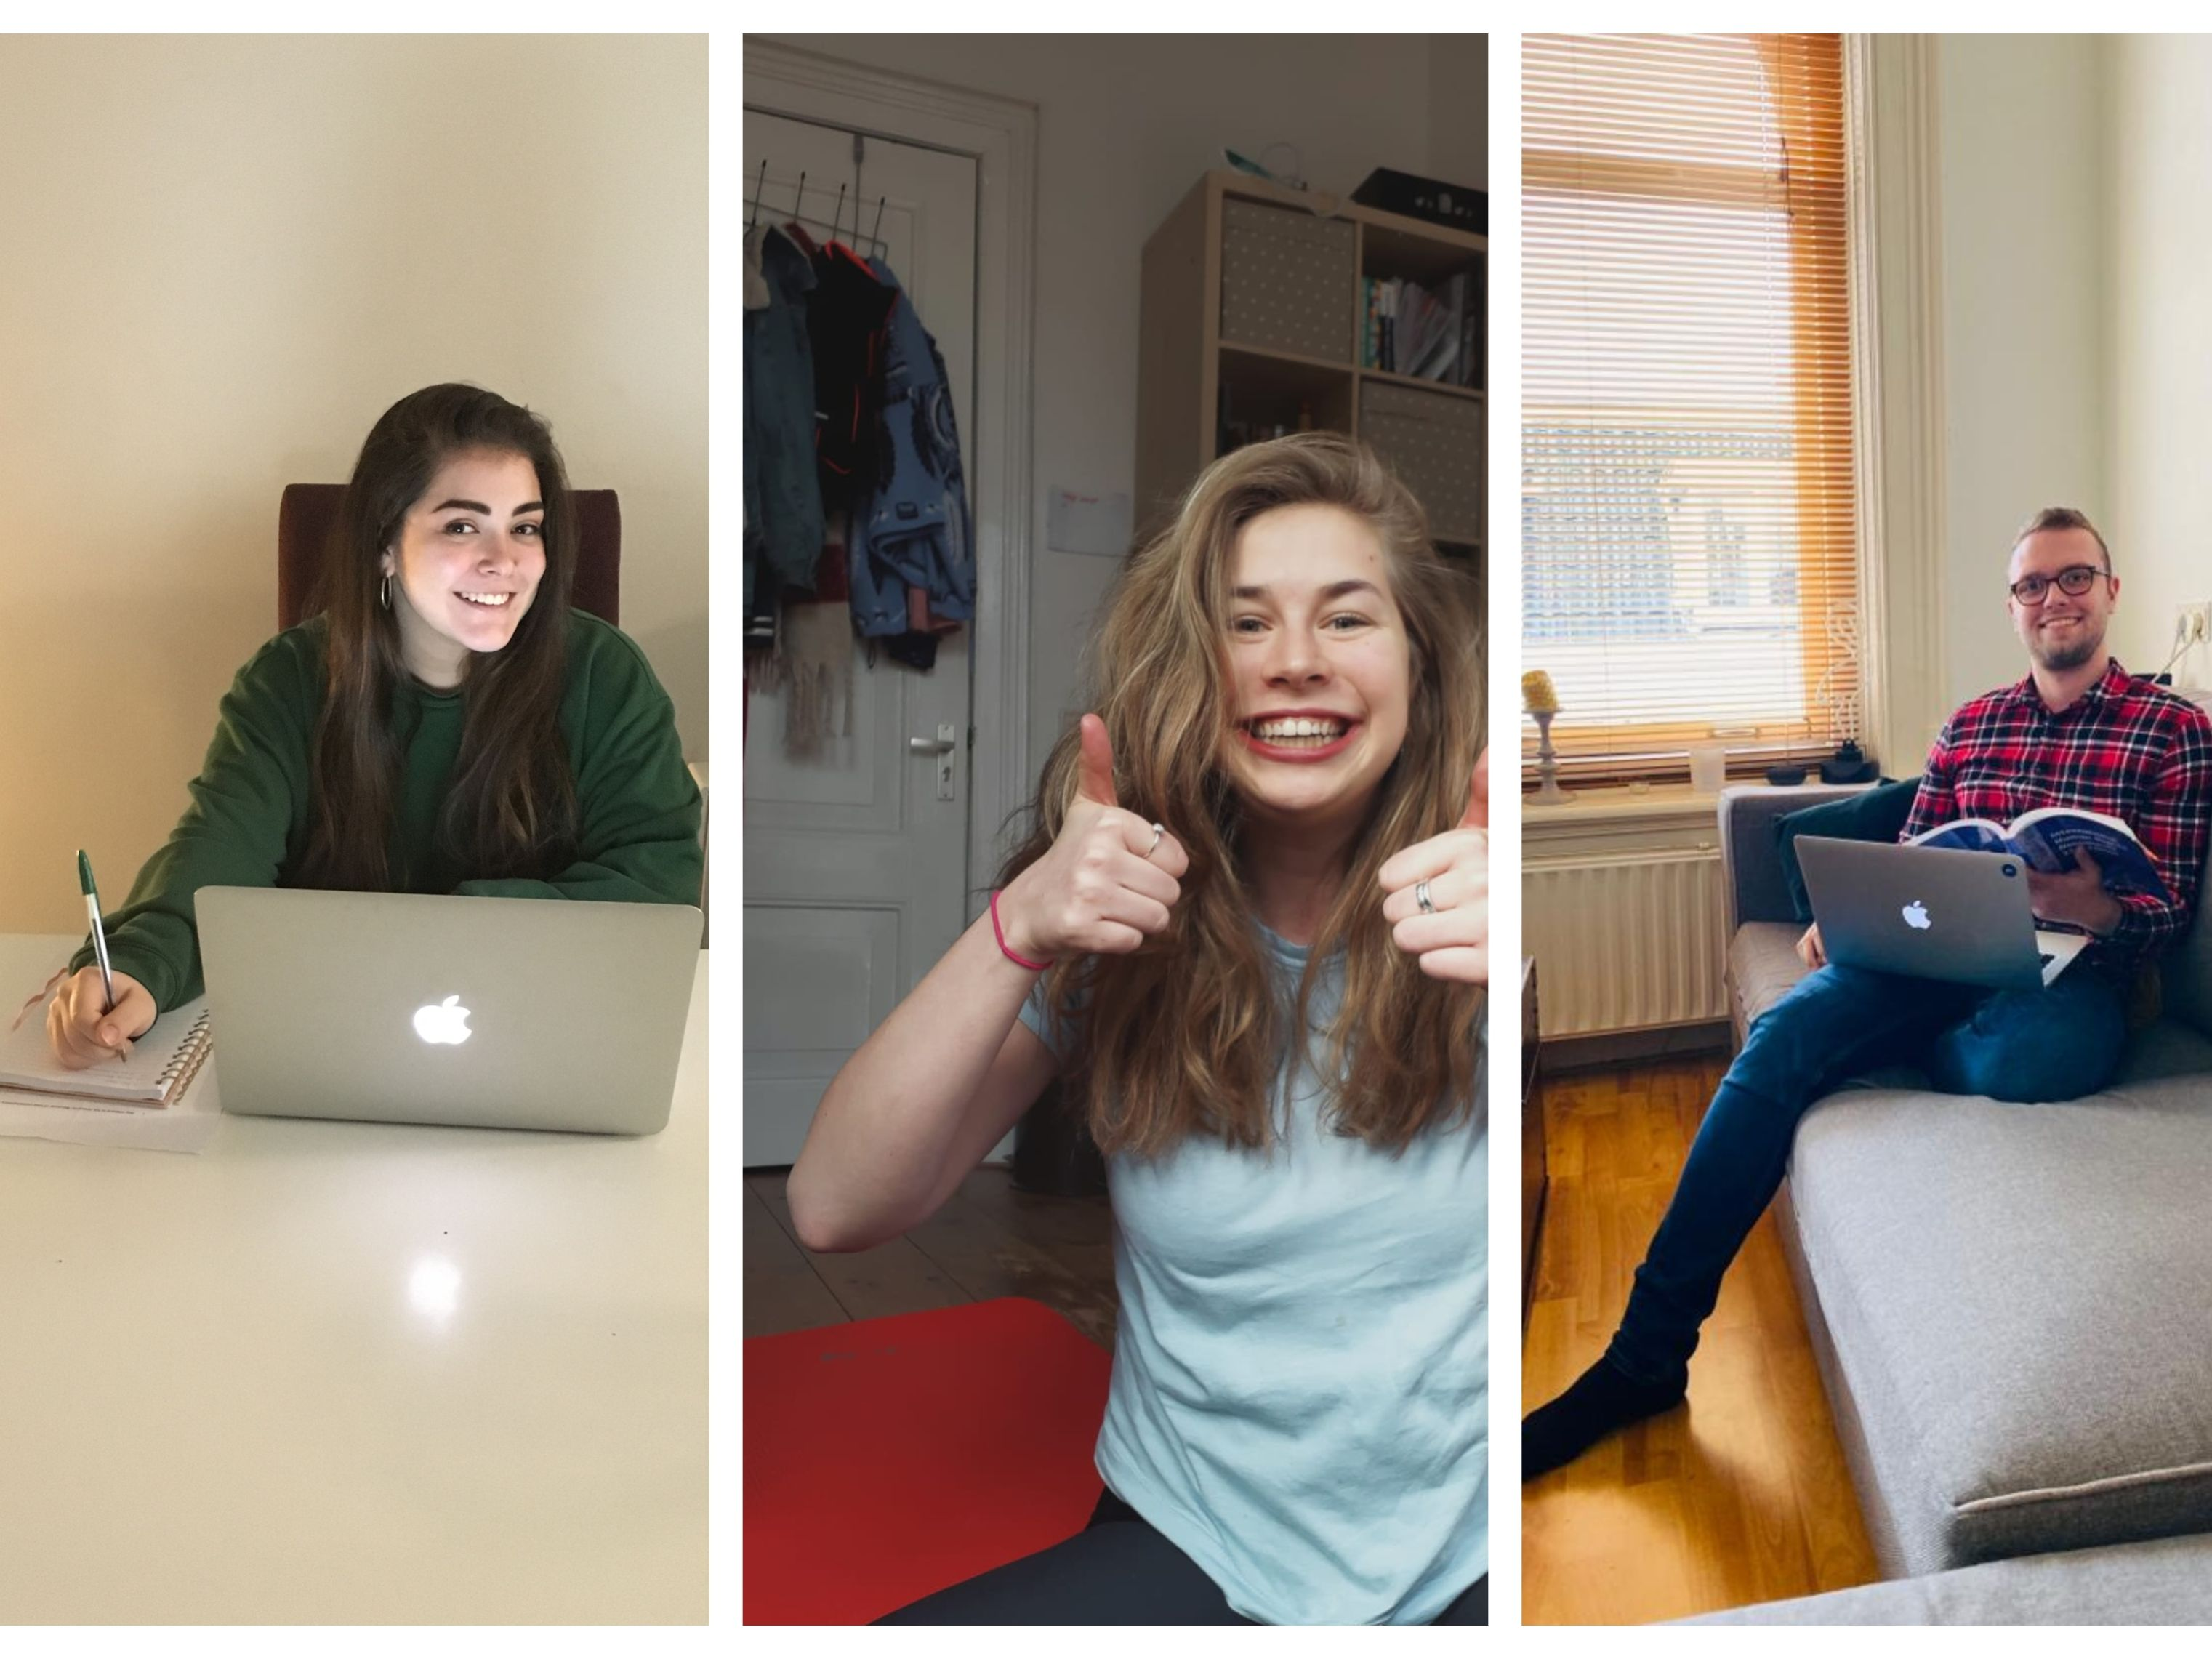 Studying, working, and exercising from home – that's our routine!